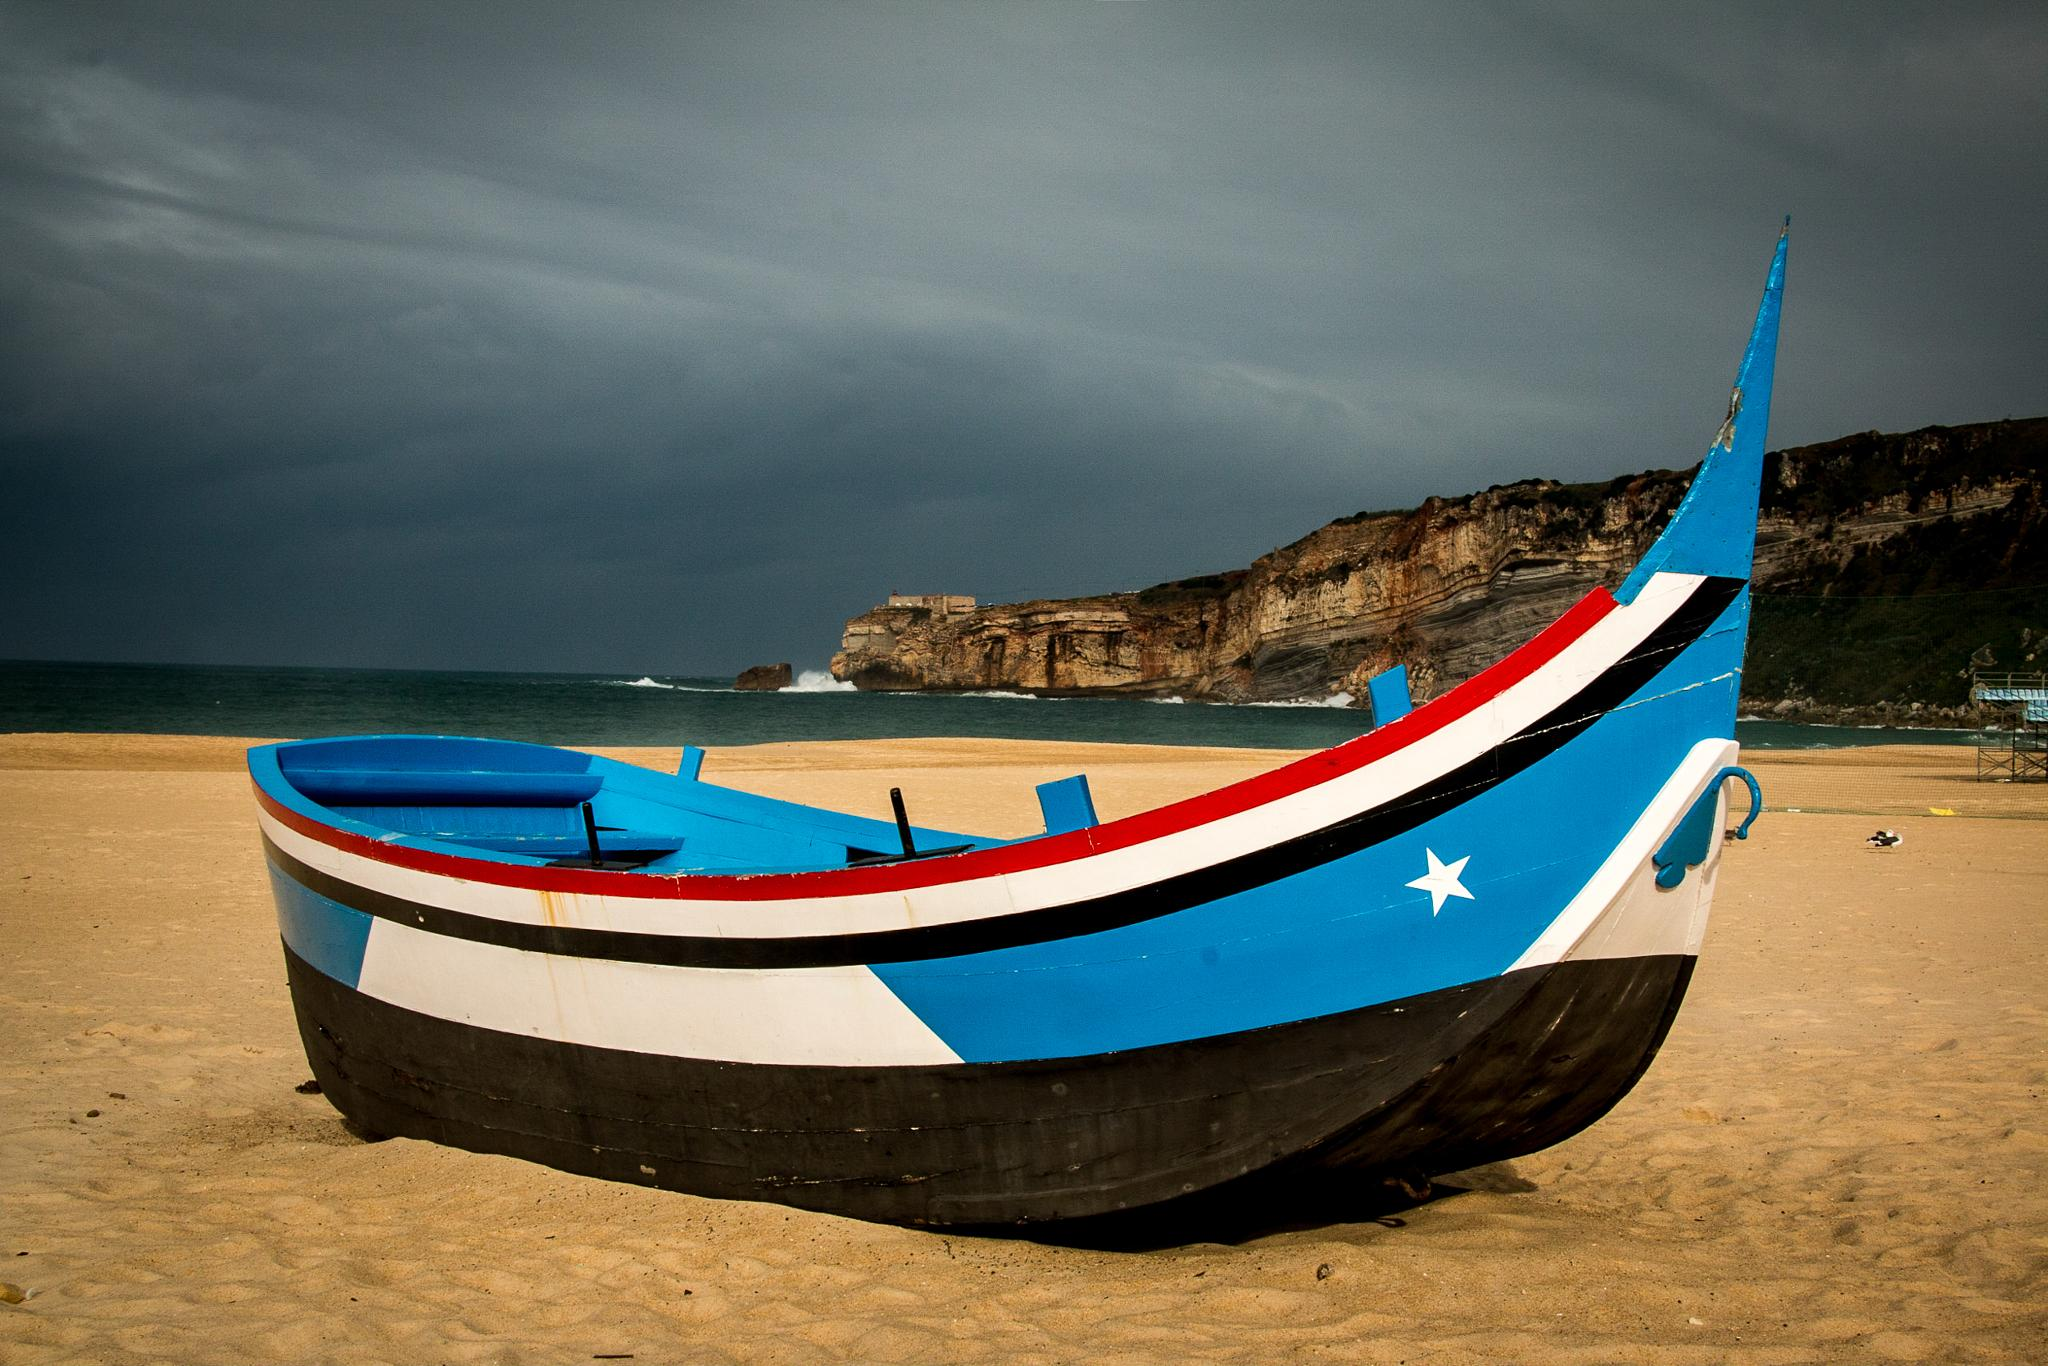 Beached at Nazare, Portugal by stephenhops